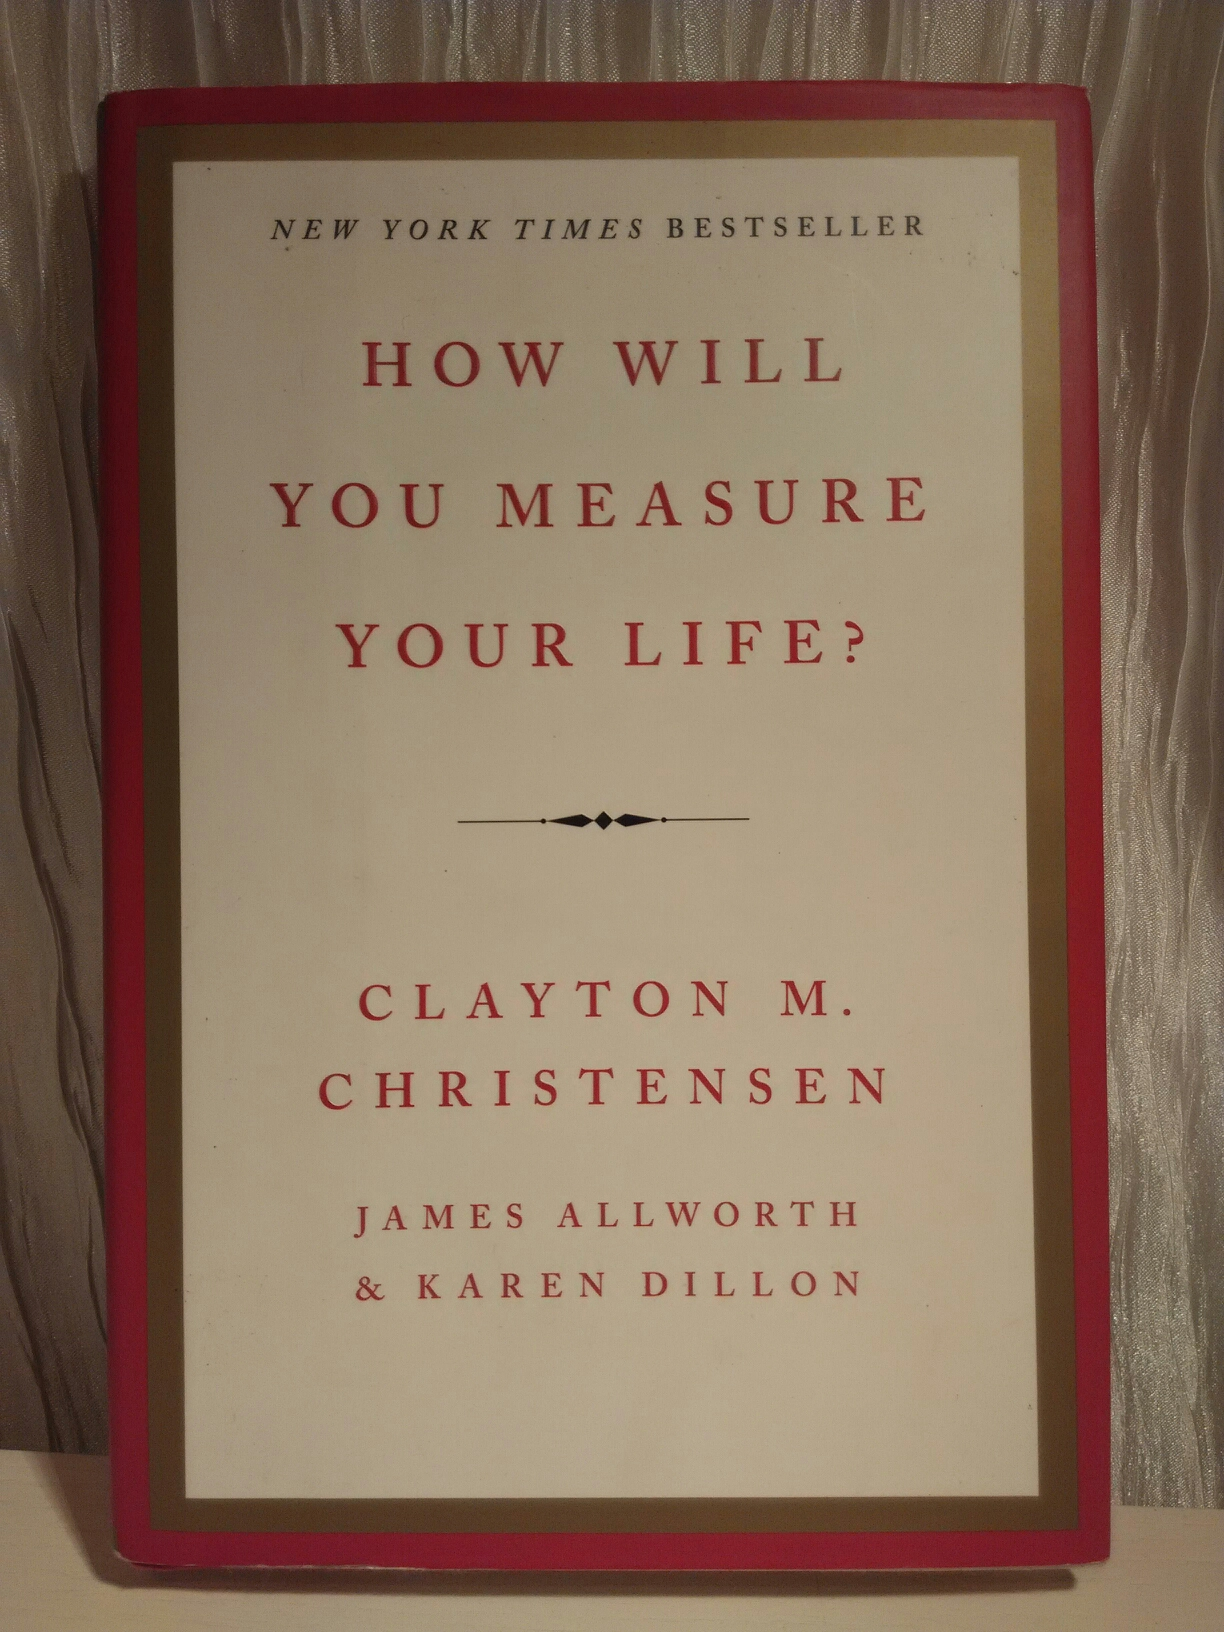 How will you measure your life? image